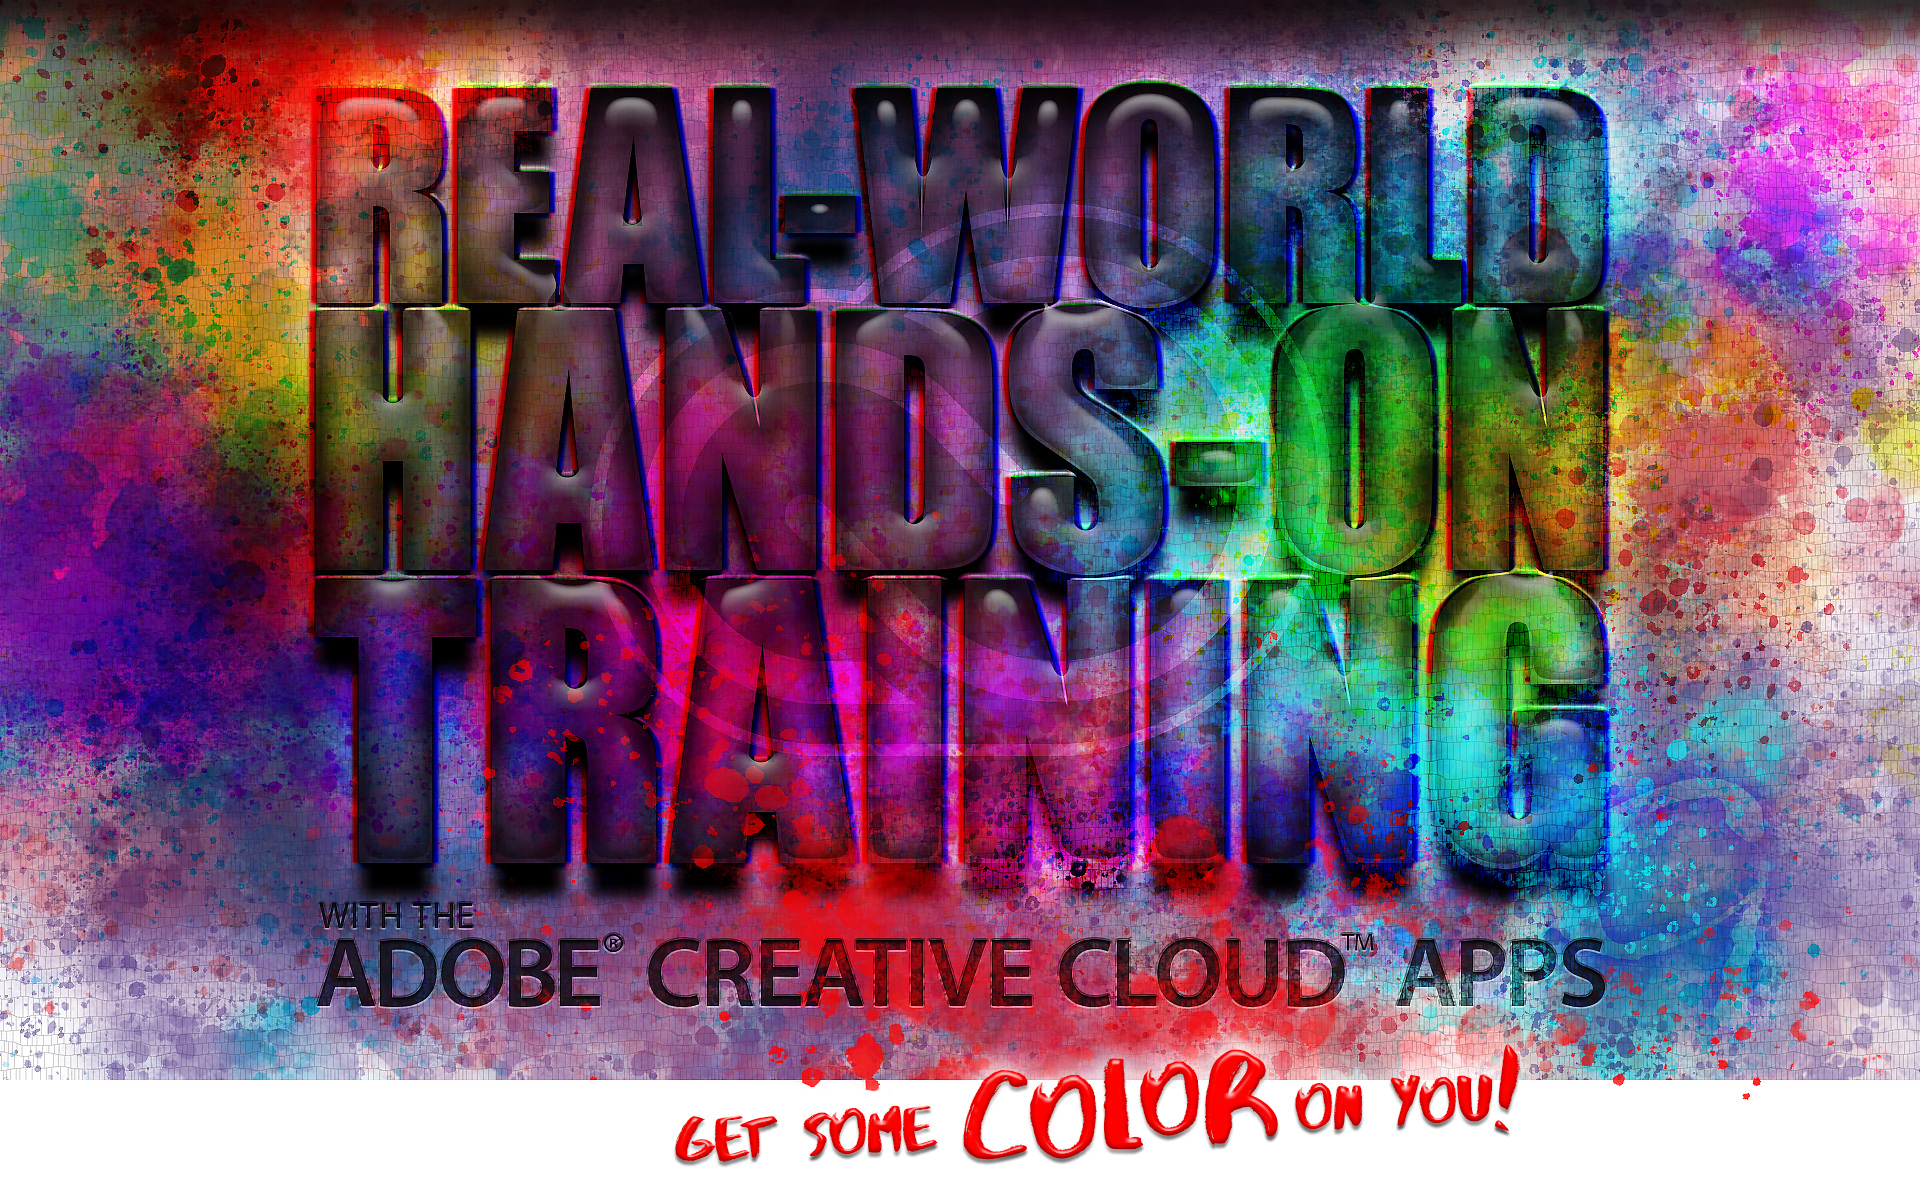 Real-World, Hands-on training with the Adobe® Creative Cloud™ Apps. Get some color on you.